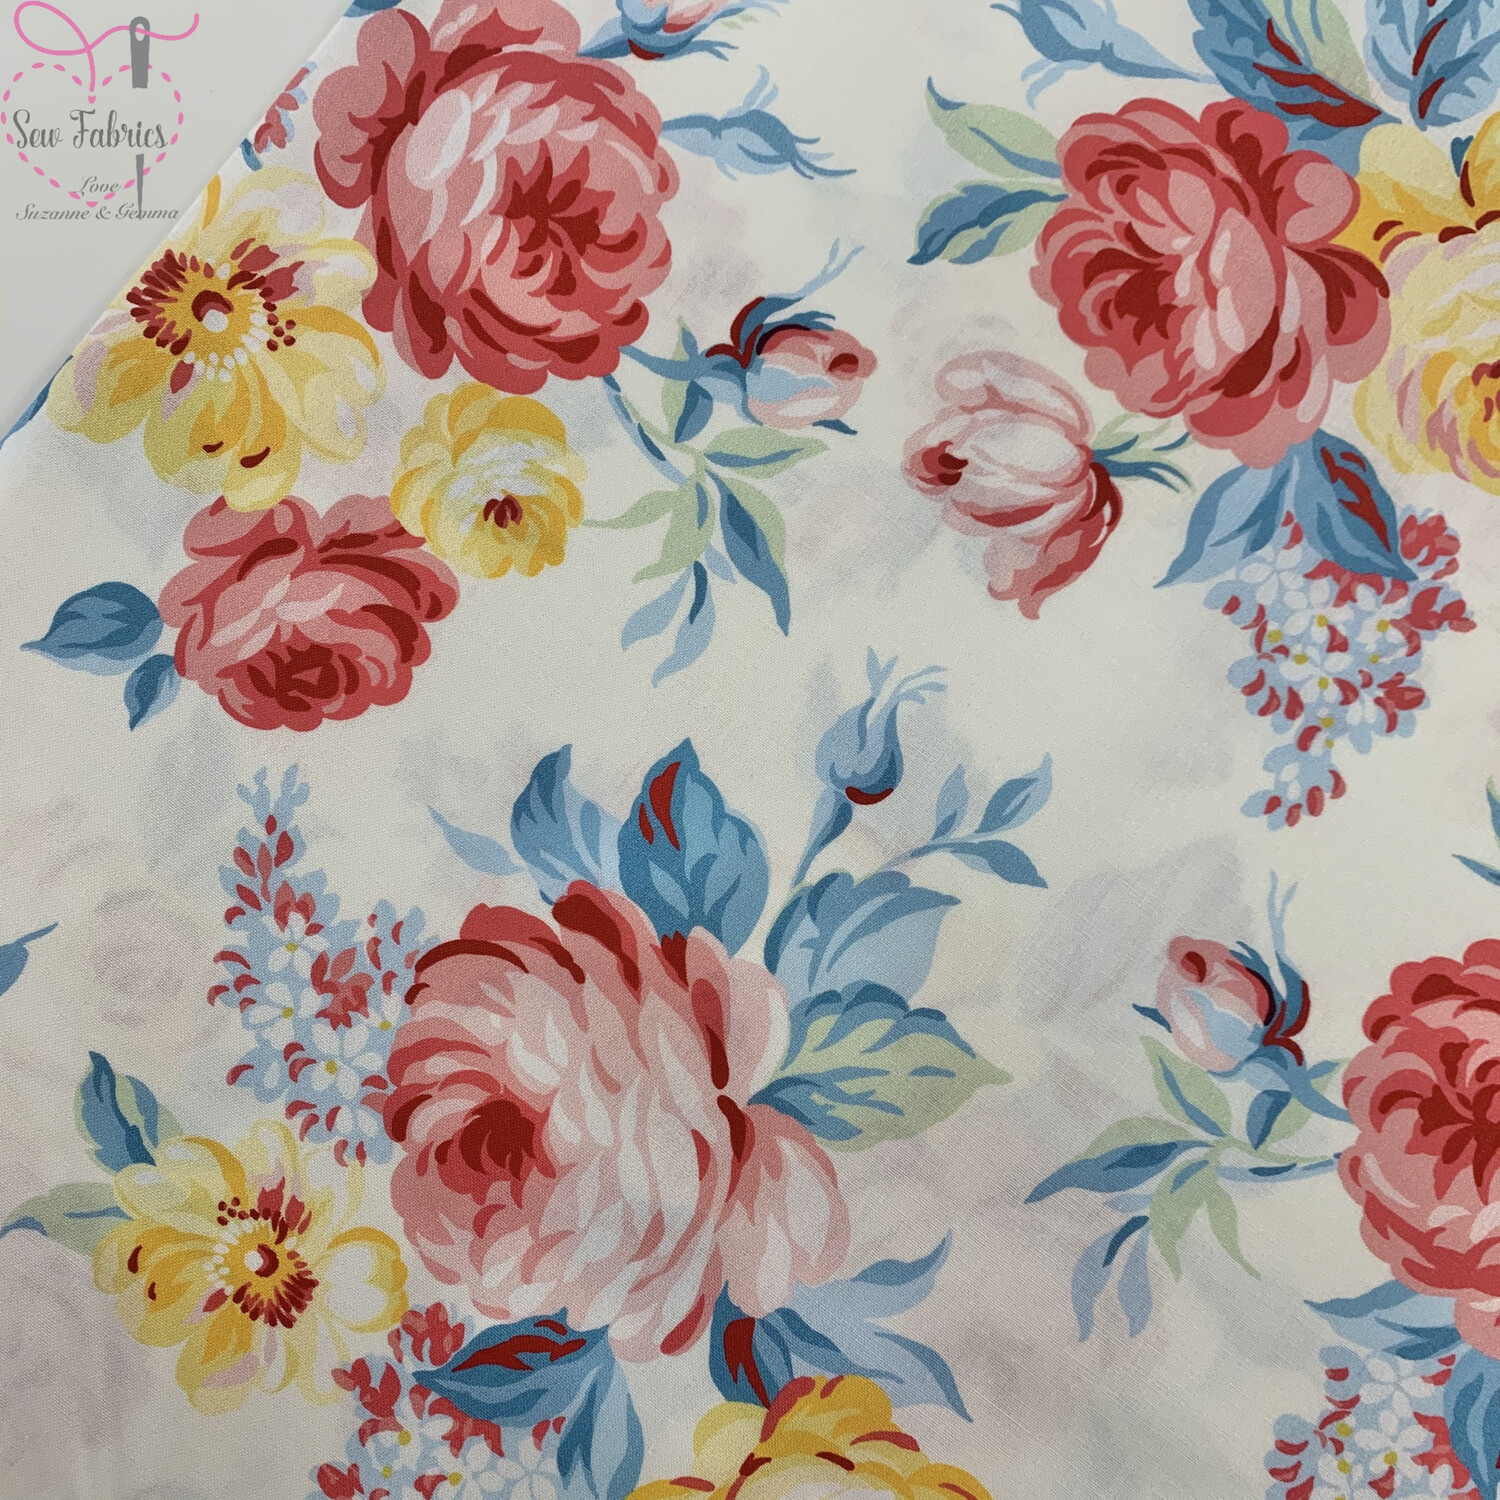 Michael Miller Country Cottage Collection - Farmstand Flowers - Peach Pink, 100% Cotton Fabric, Dressmaking, Quilting, Home Soft Furnishings Floral Material